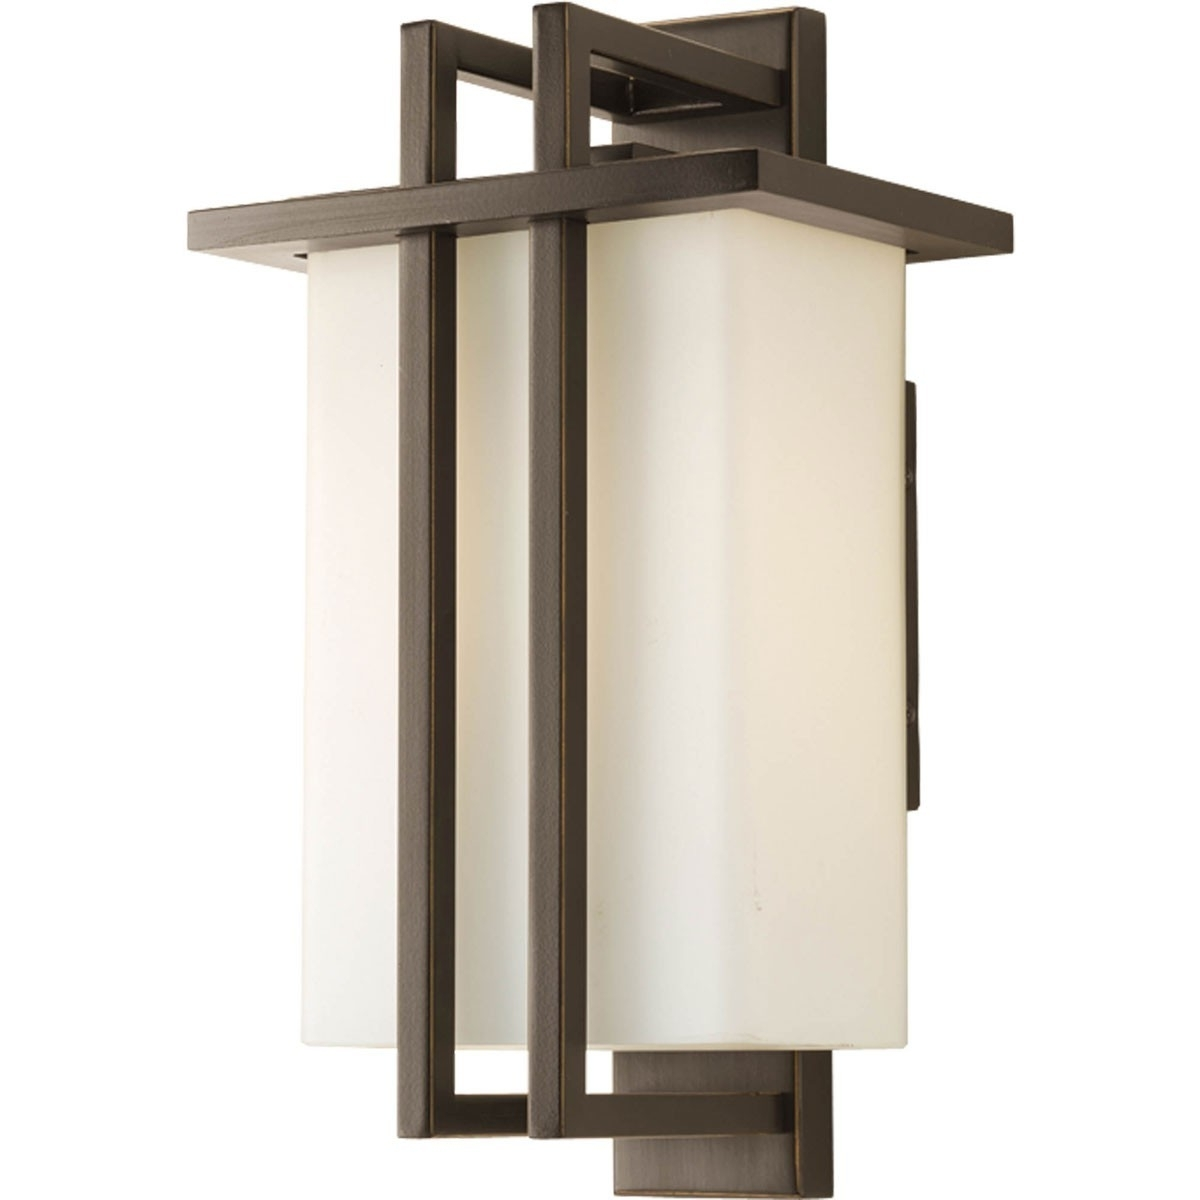 Outdoor Small Hanging Lantern Light Fixture – Progress Lighting Pertaining To Well Liked Outdoor Hanging Lantern Lights (View 18 of 20)